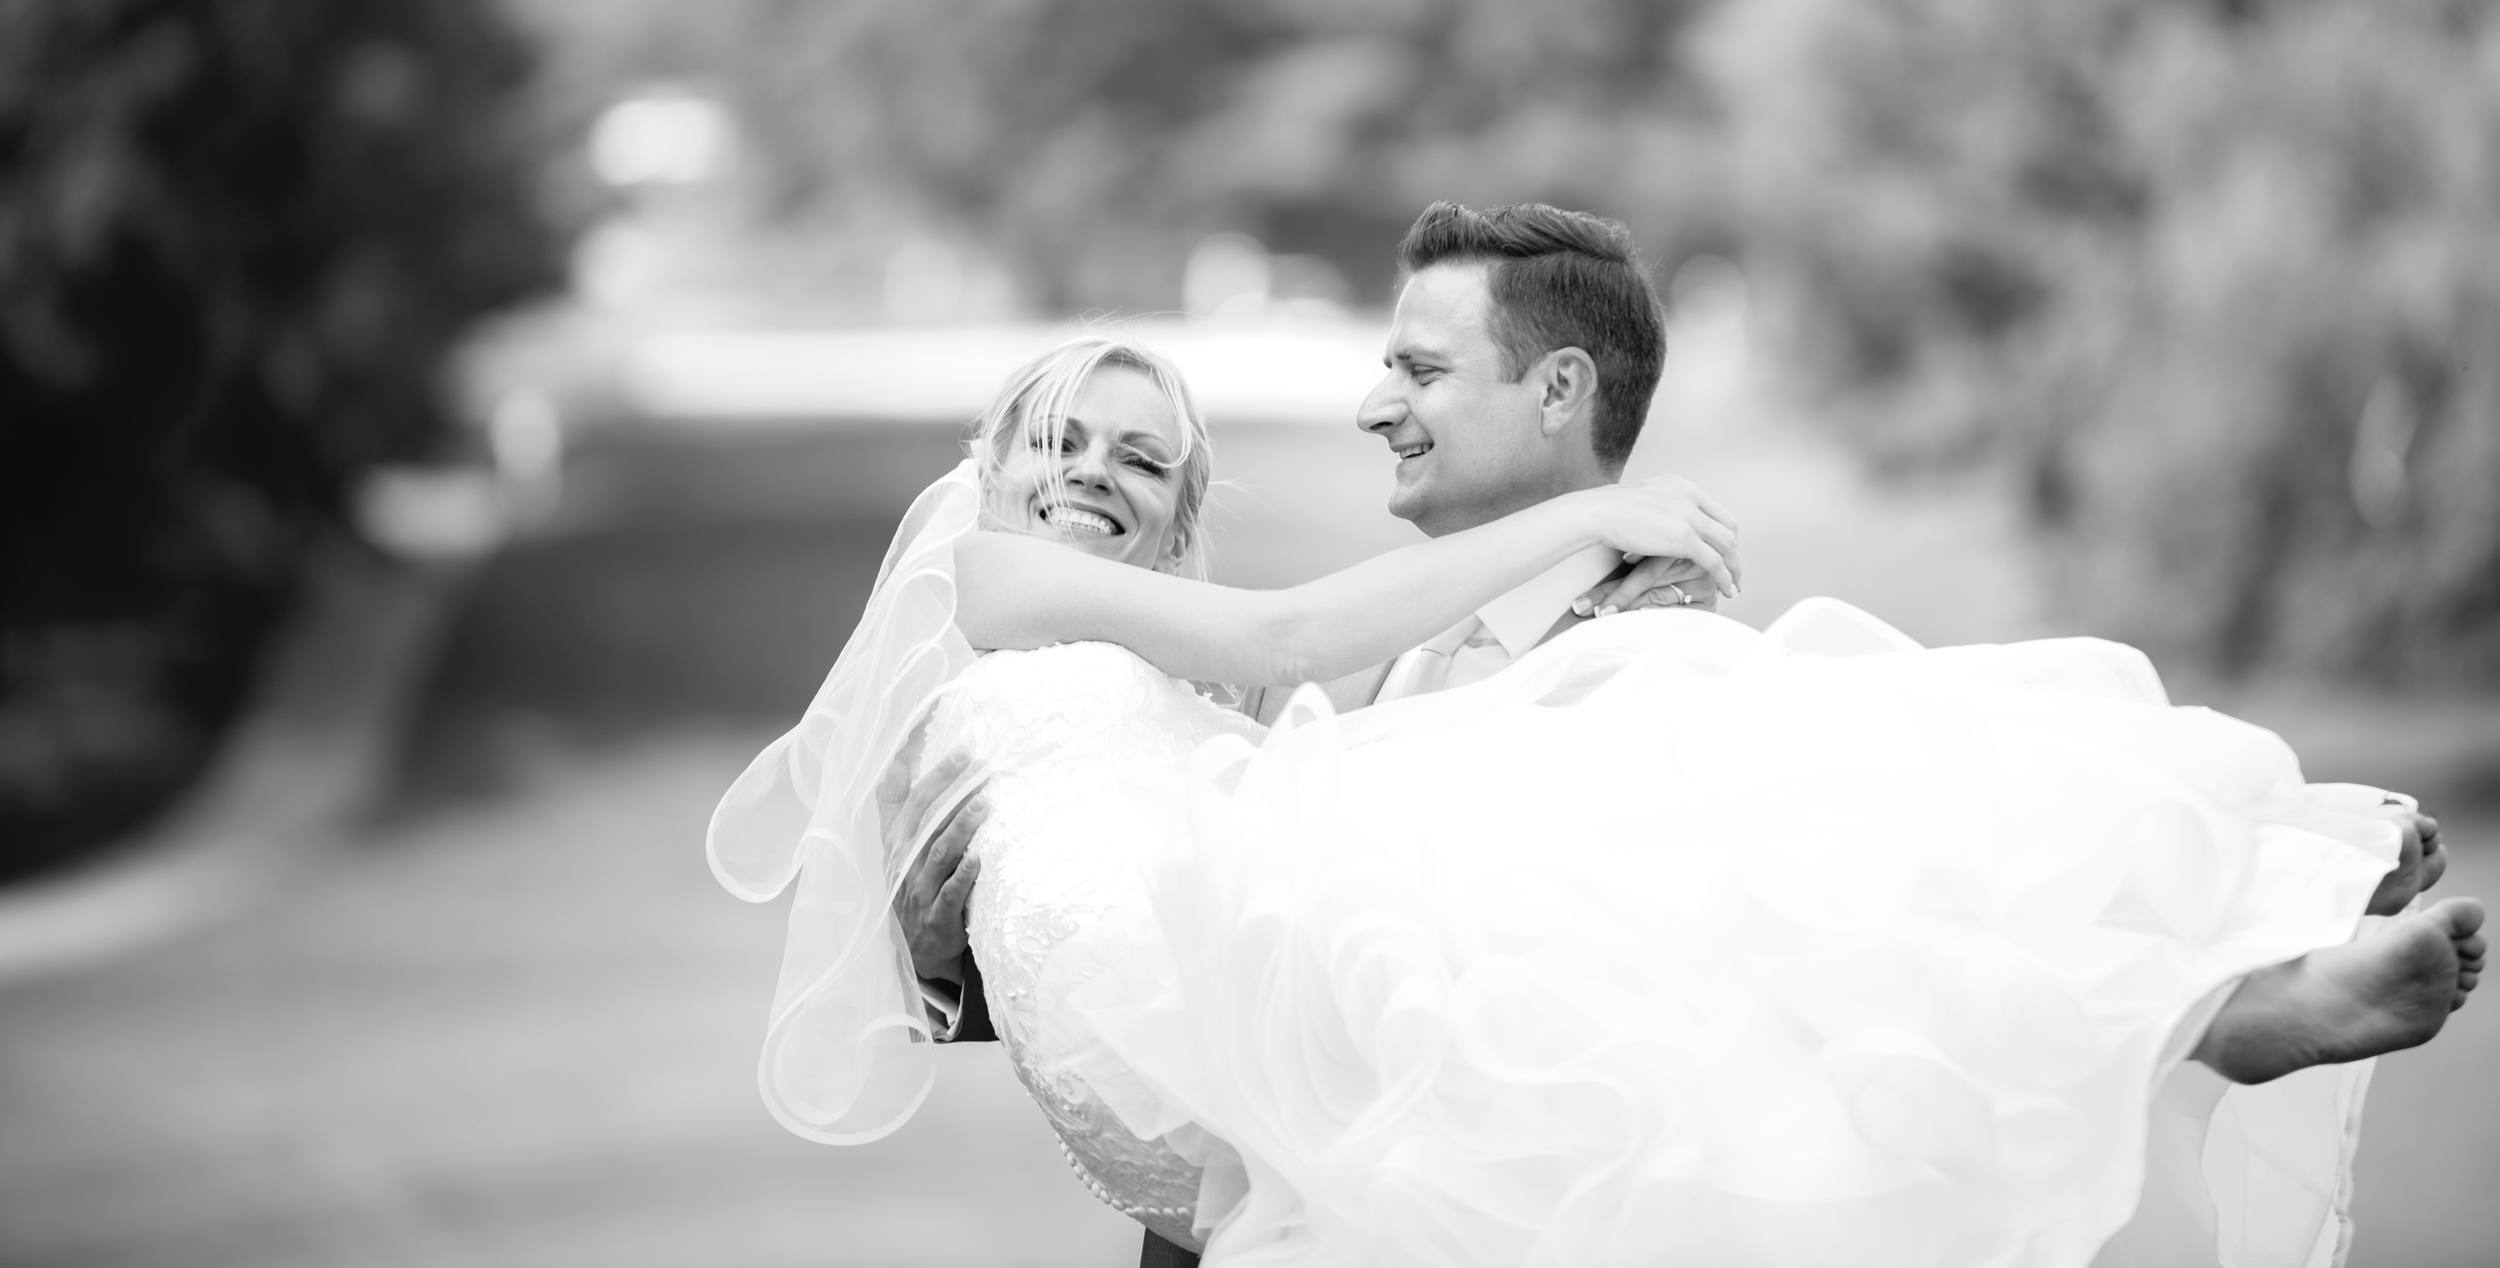 025Koper-Ekiert-Roanoke-Wedding-Virginia-Photographer-mattrossphotography.com.jpg